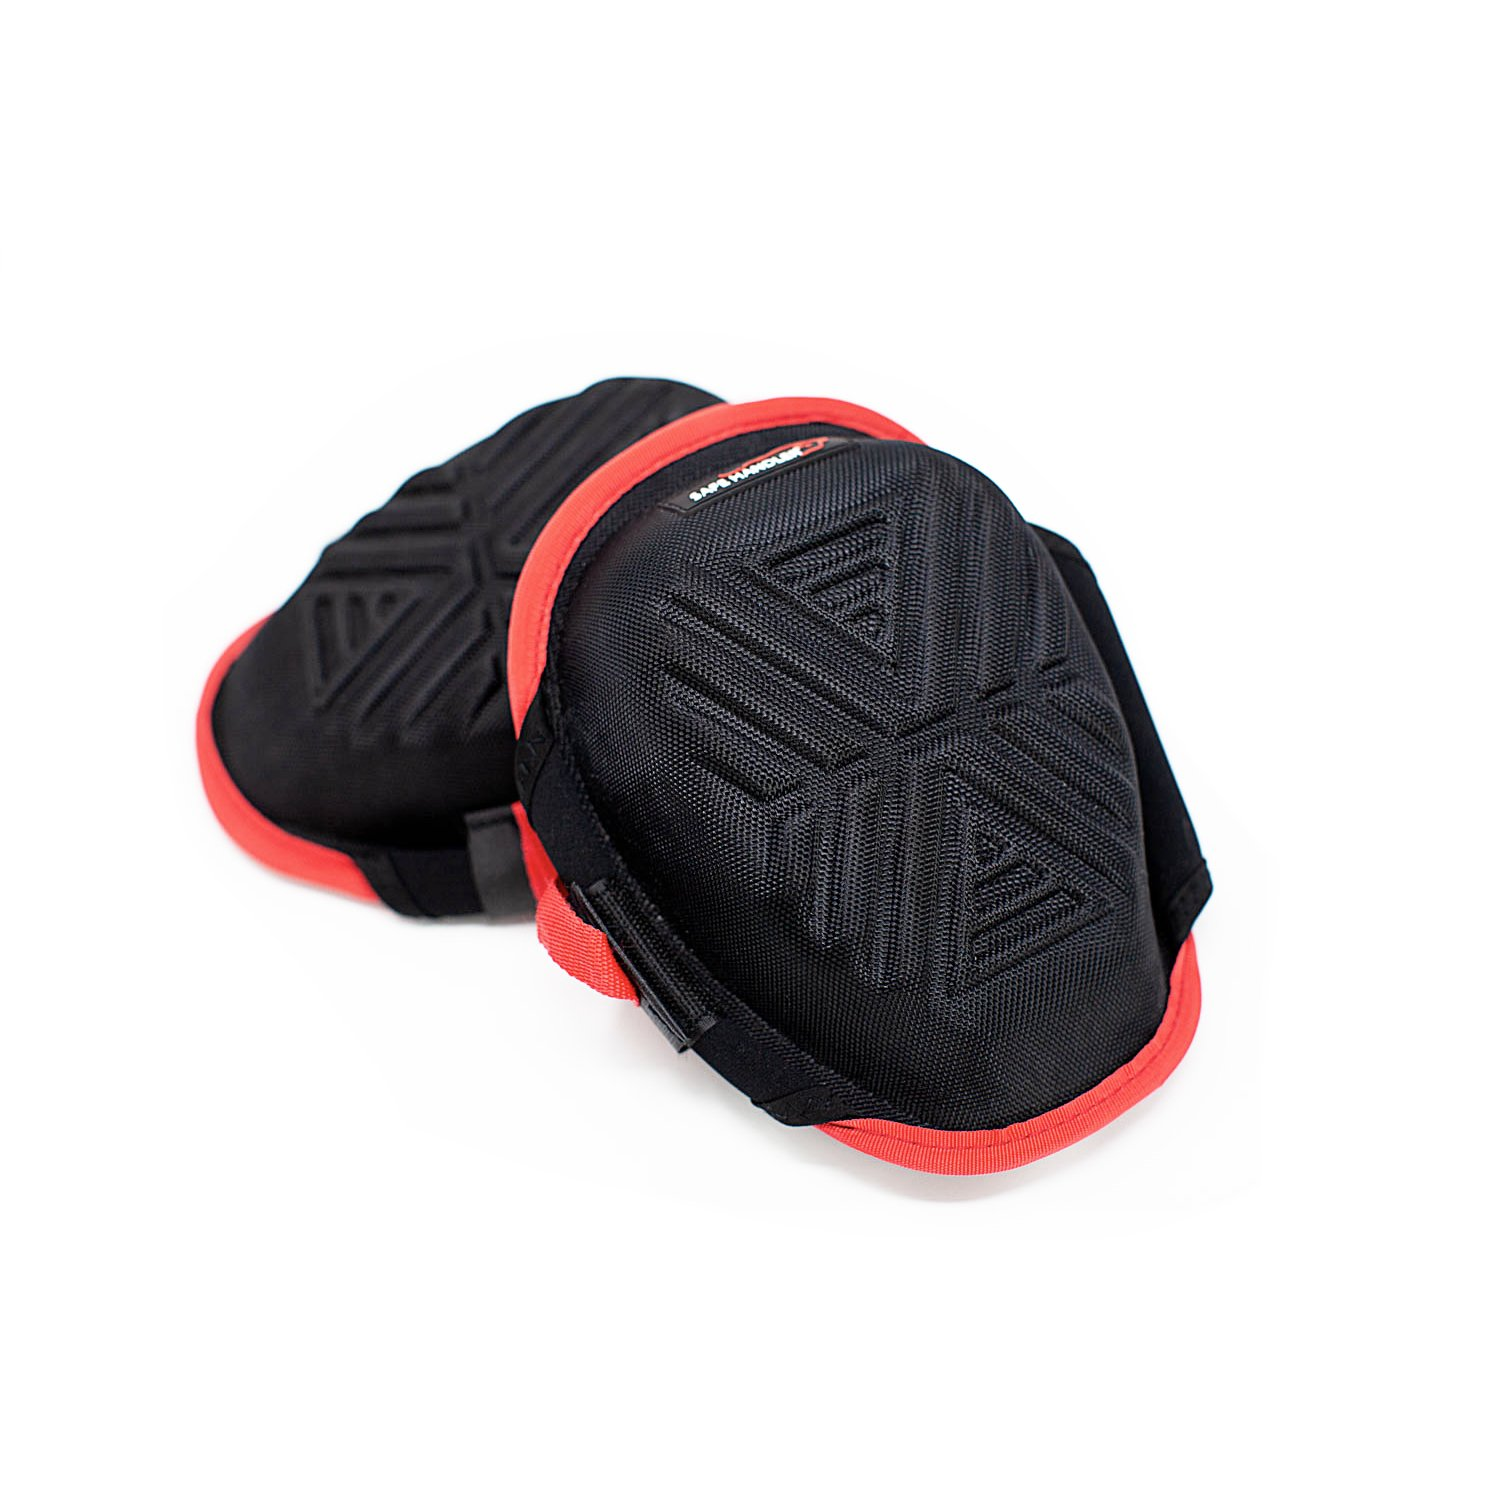 SAFE HANDLER Xtra Strong Gel Knee Pads with Memory Foam | Comfortable, Heavy Duty, Easily Adjustable, No Scratch Fabric (Strong Gel Red) by Safe Handler (Image #1)